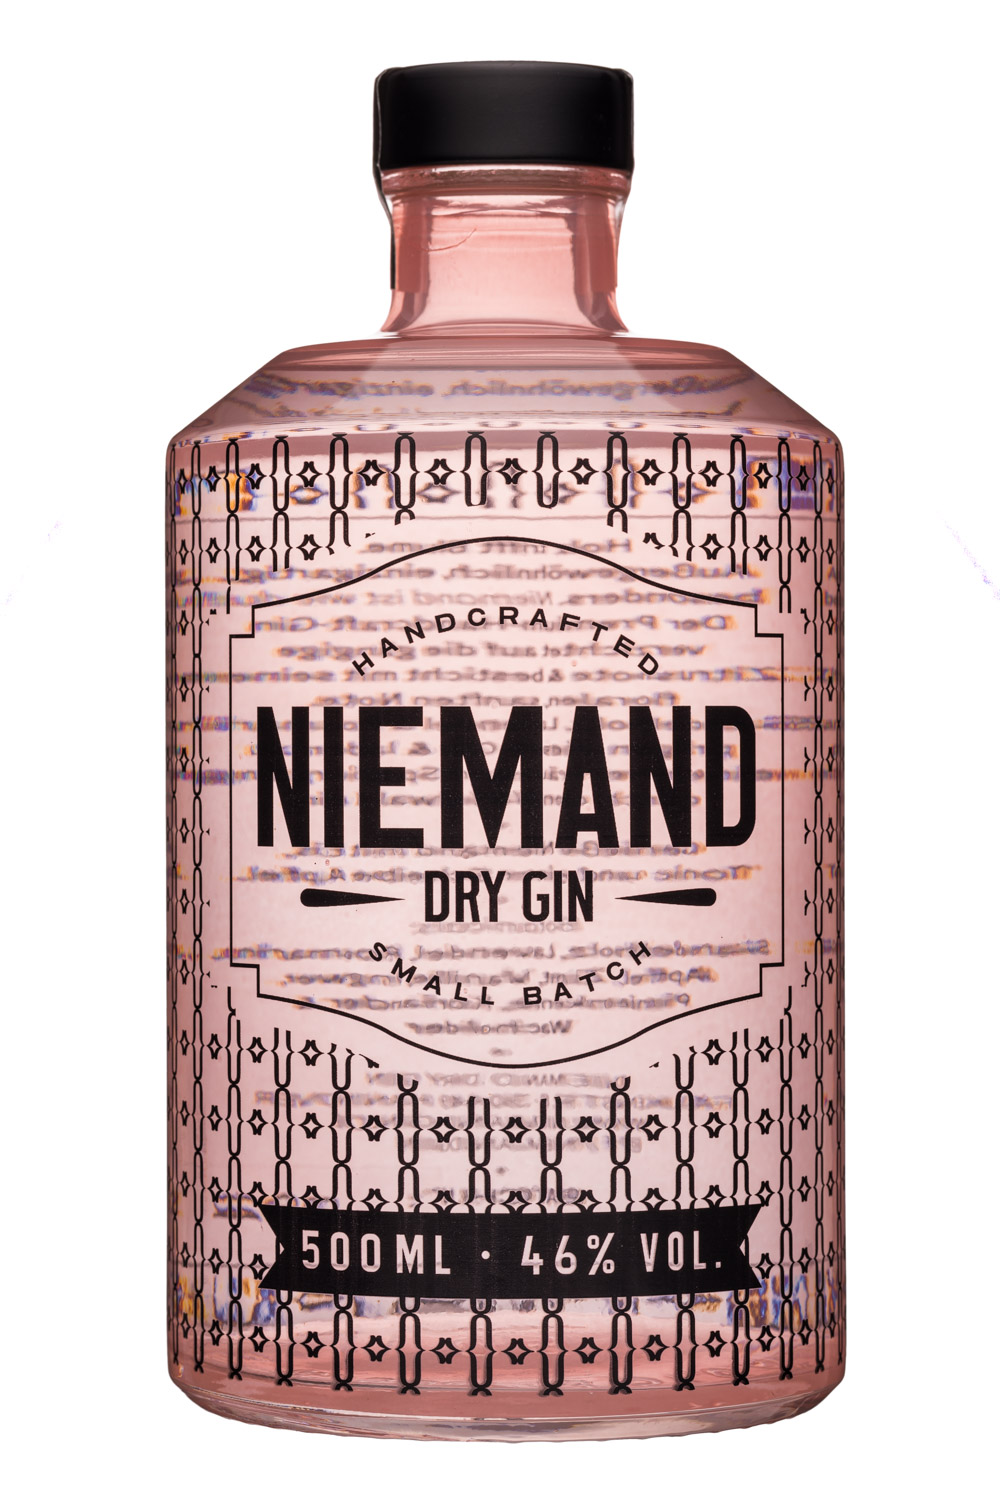 Handcrafted Dry Gin